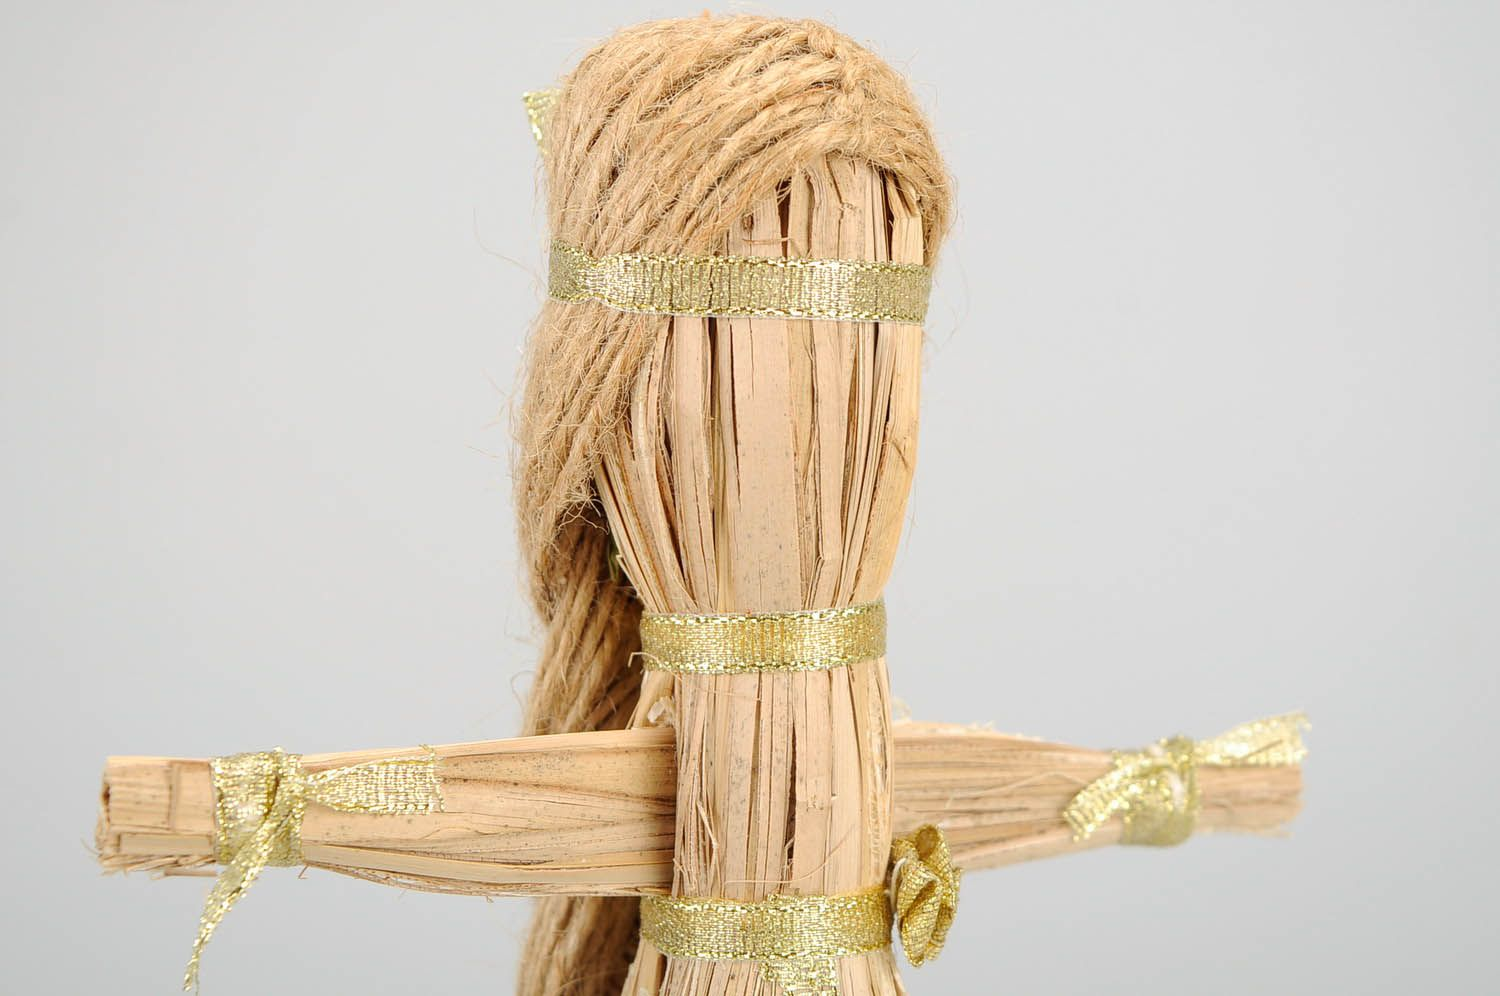 Amulet doll made of natural material photo 5